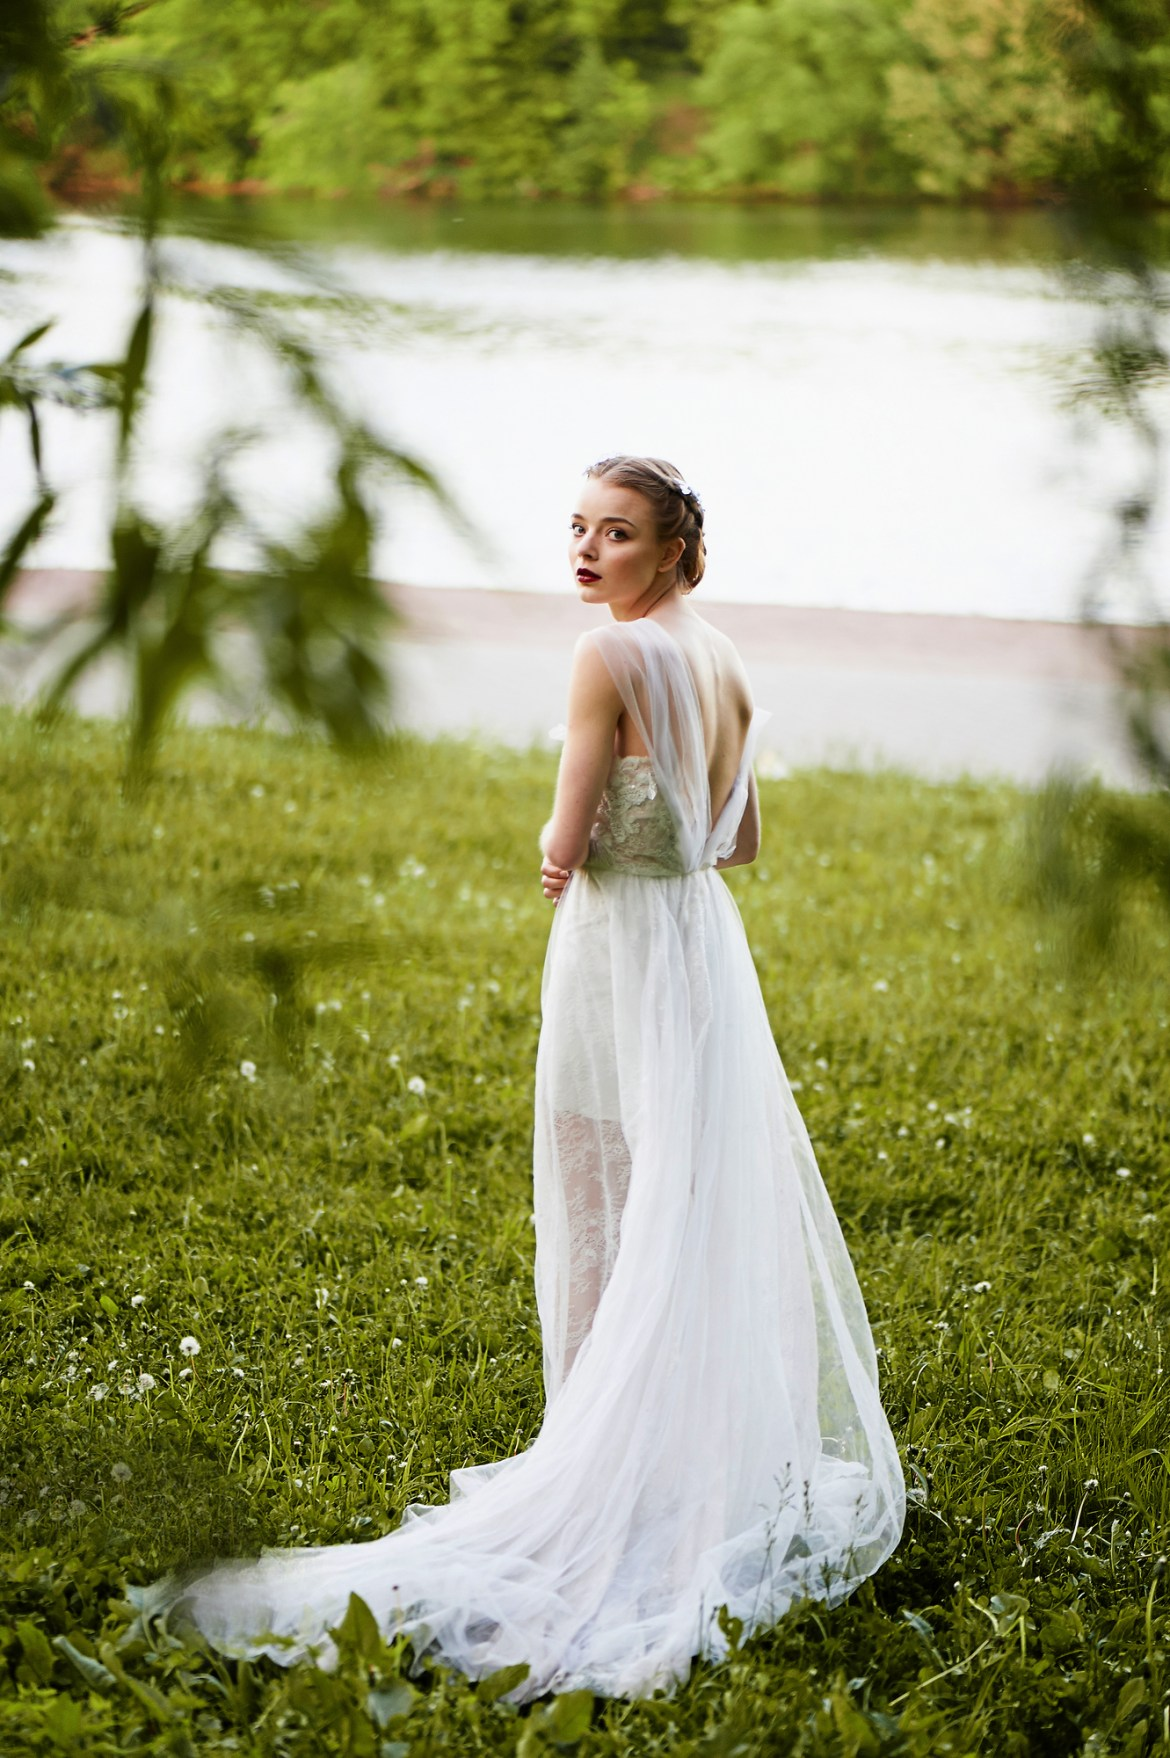 Beautiful girl in white long dress with open back. In full growth